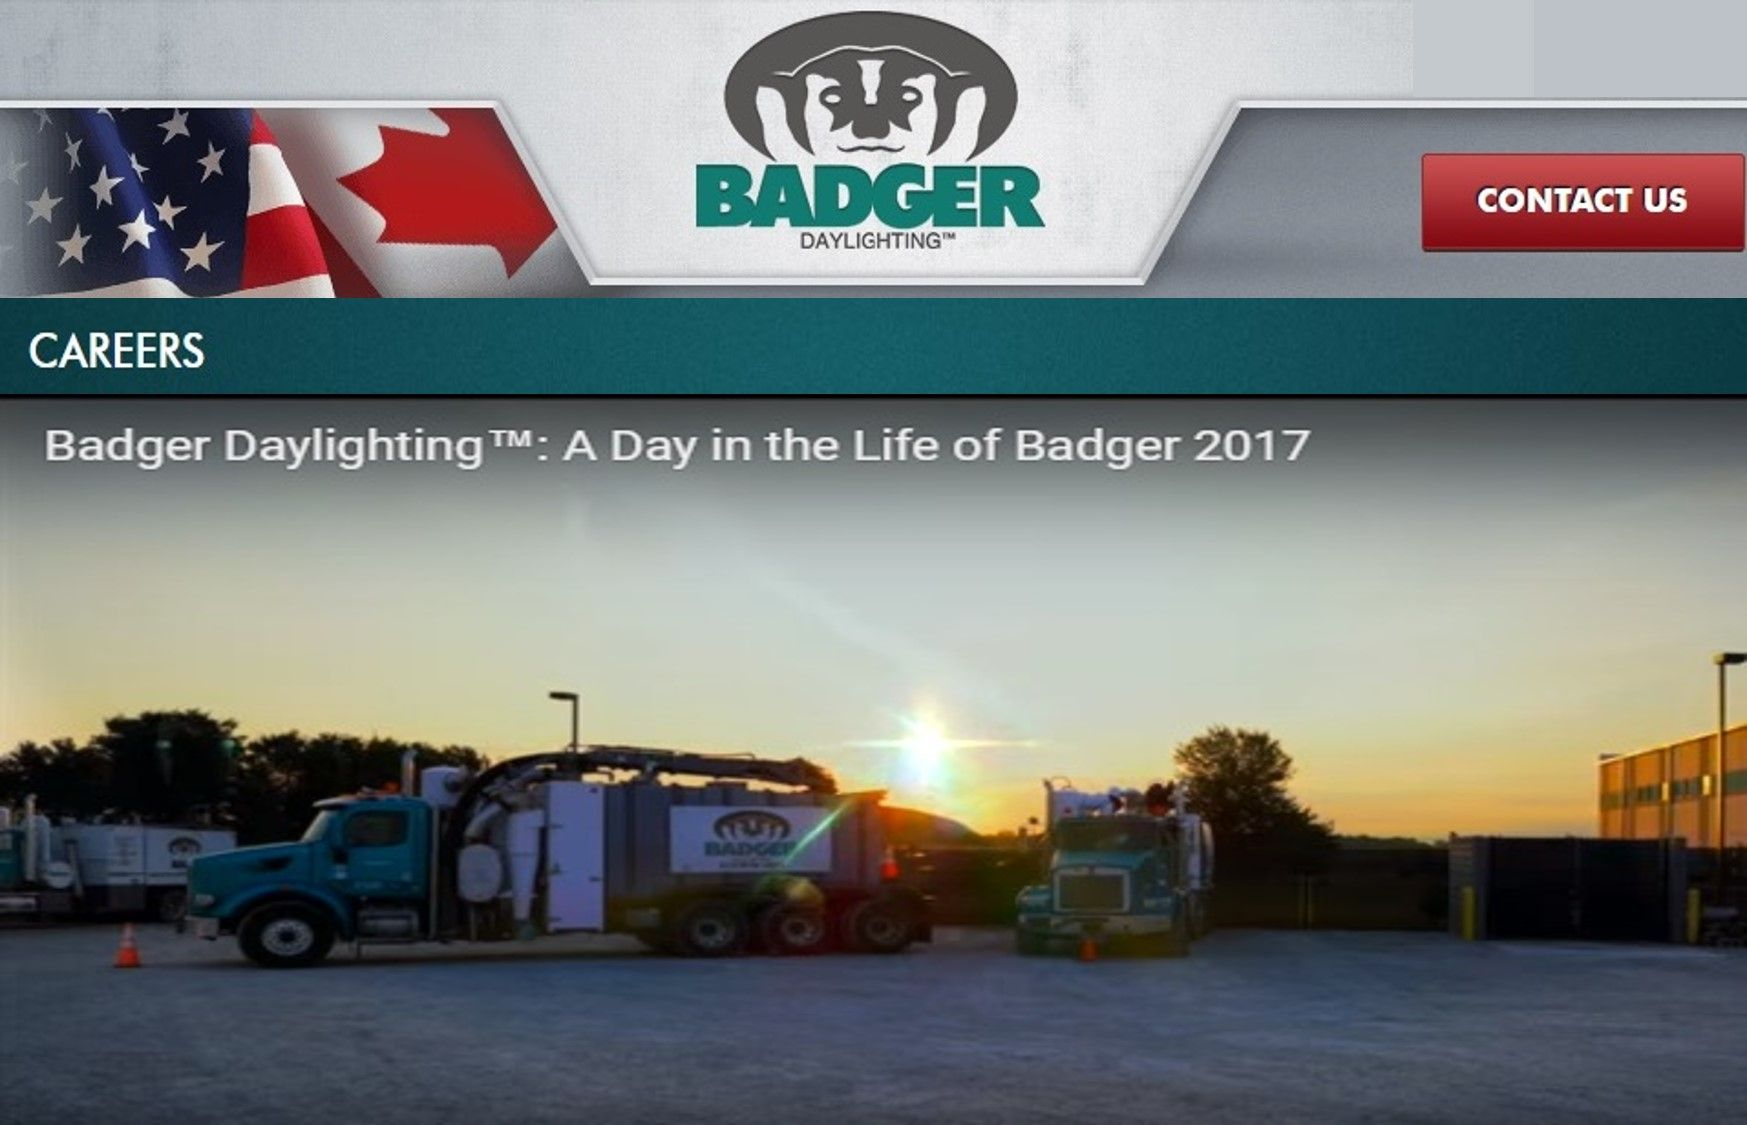 After Mississauga, Badger Daylighting will come to the